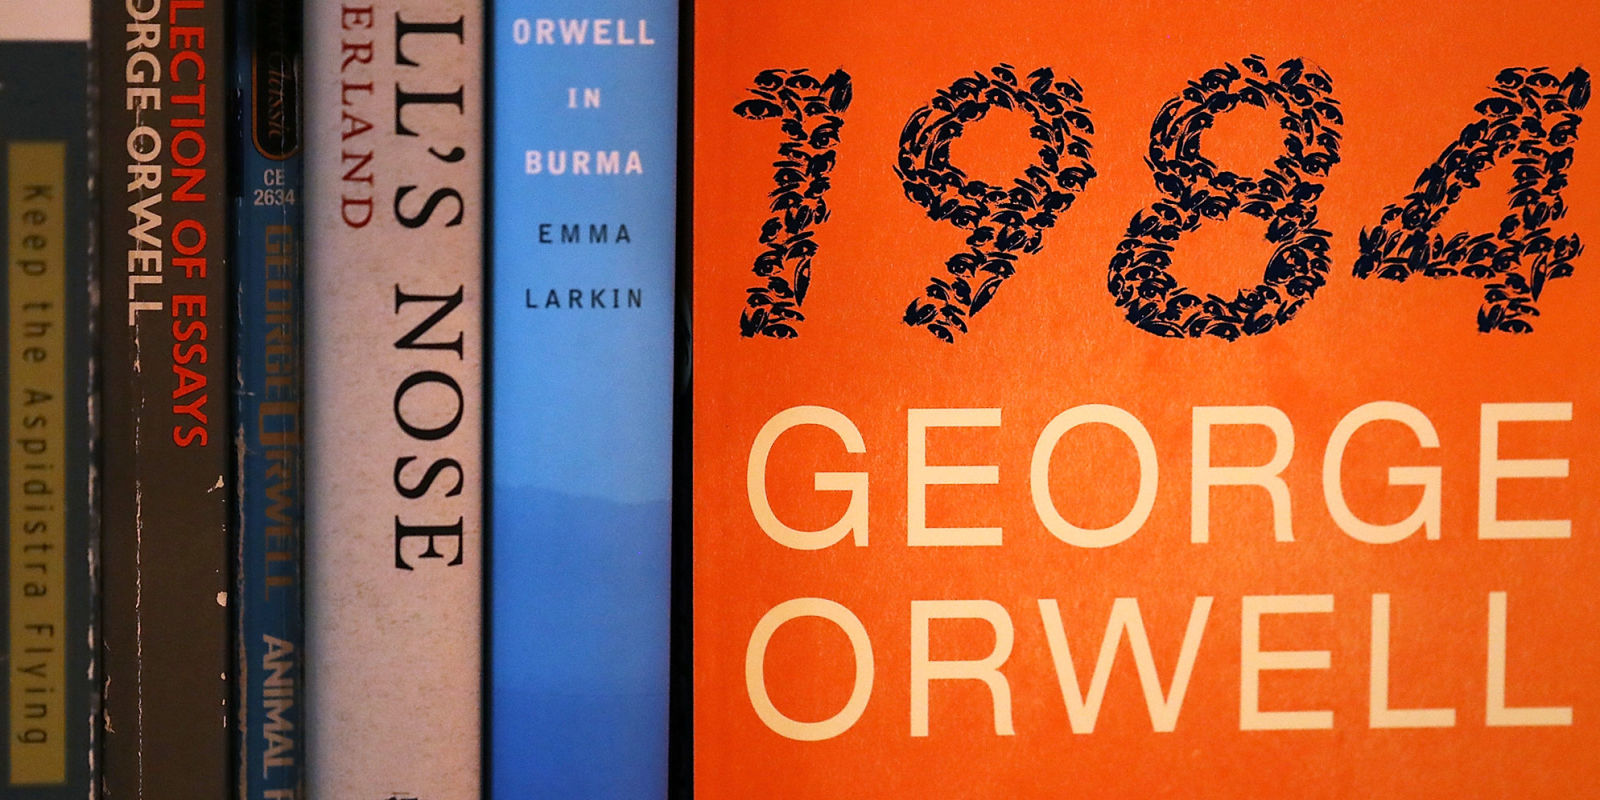 by george orwell s increase in tops amazon 1984 by george orwell s increase in 2017 1984 tops amazon best seller list